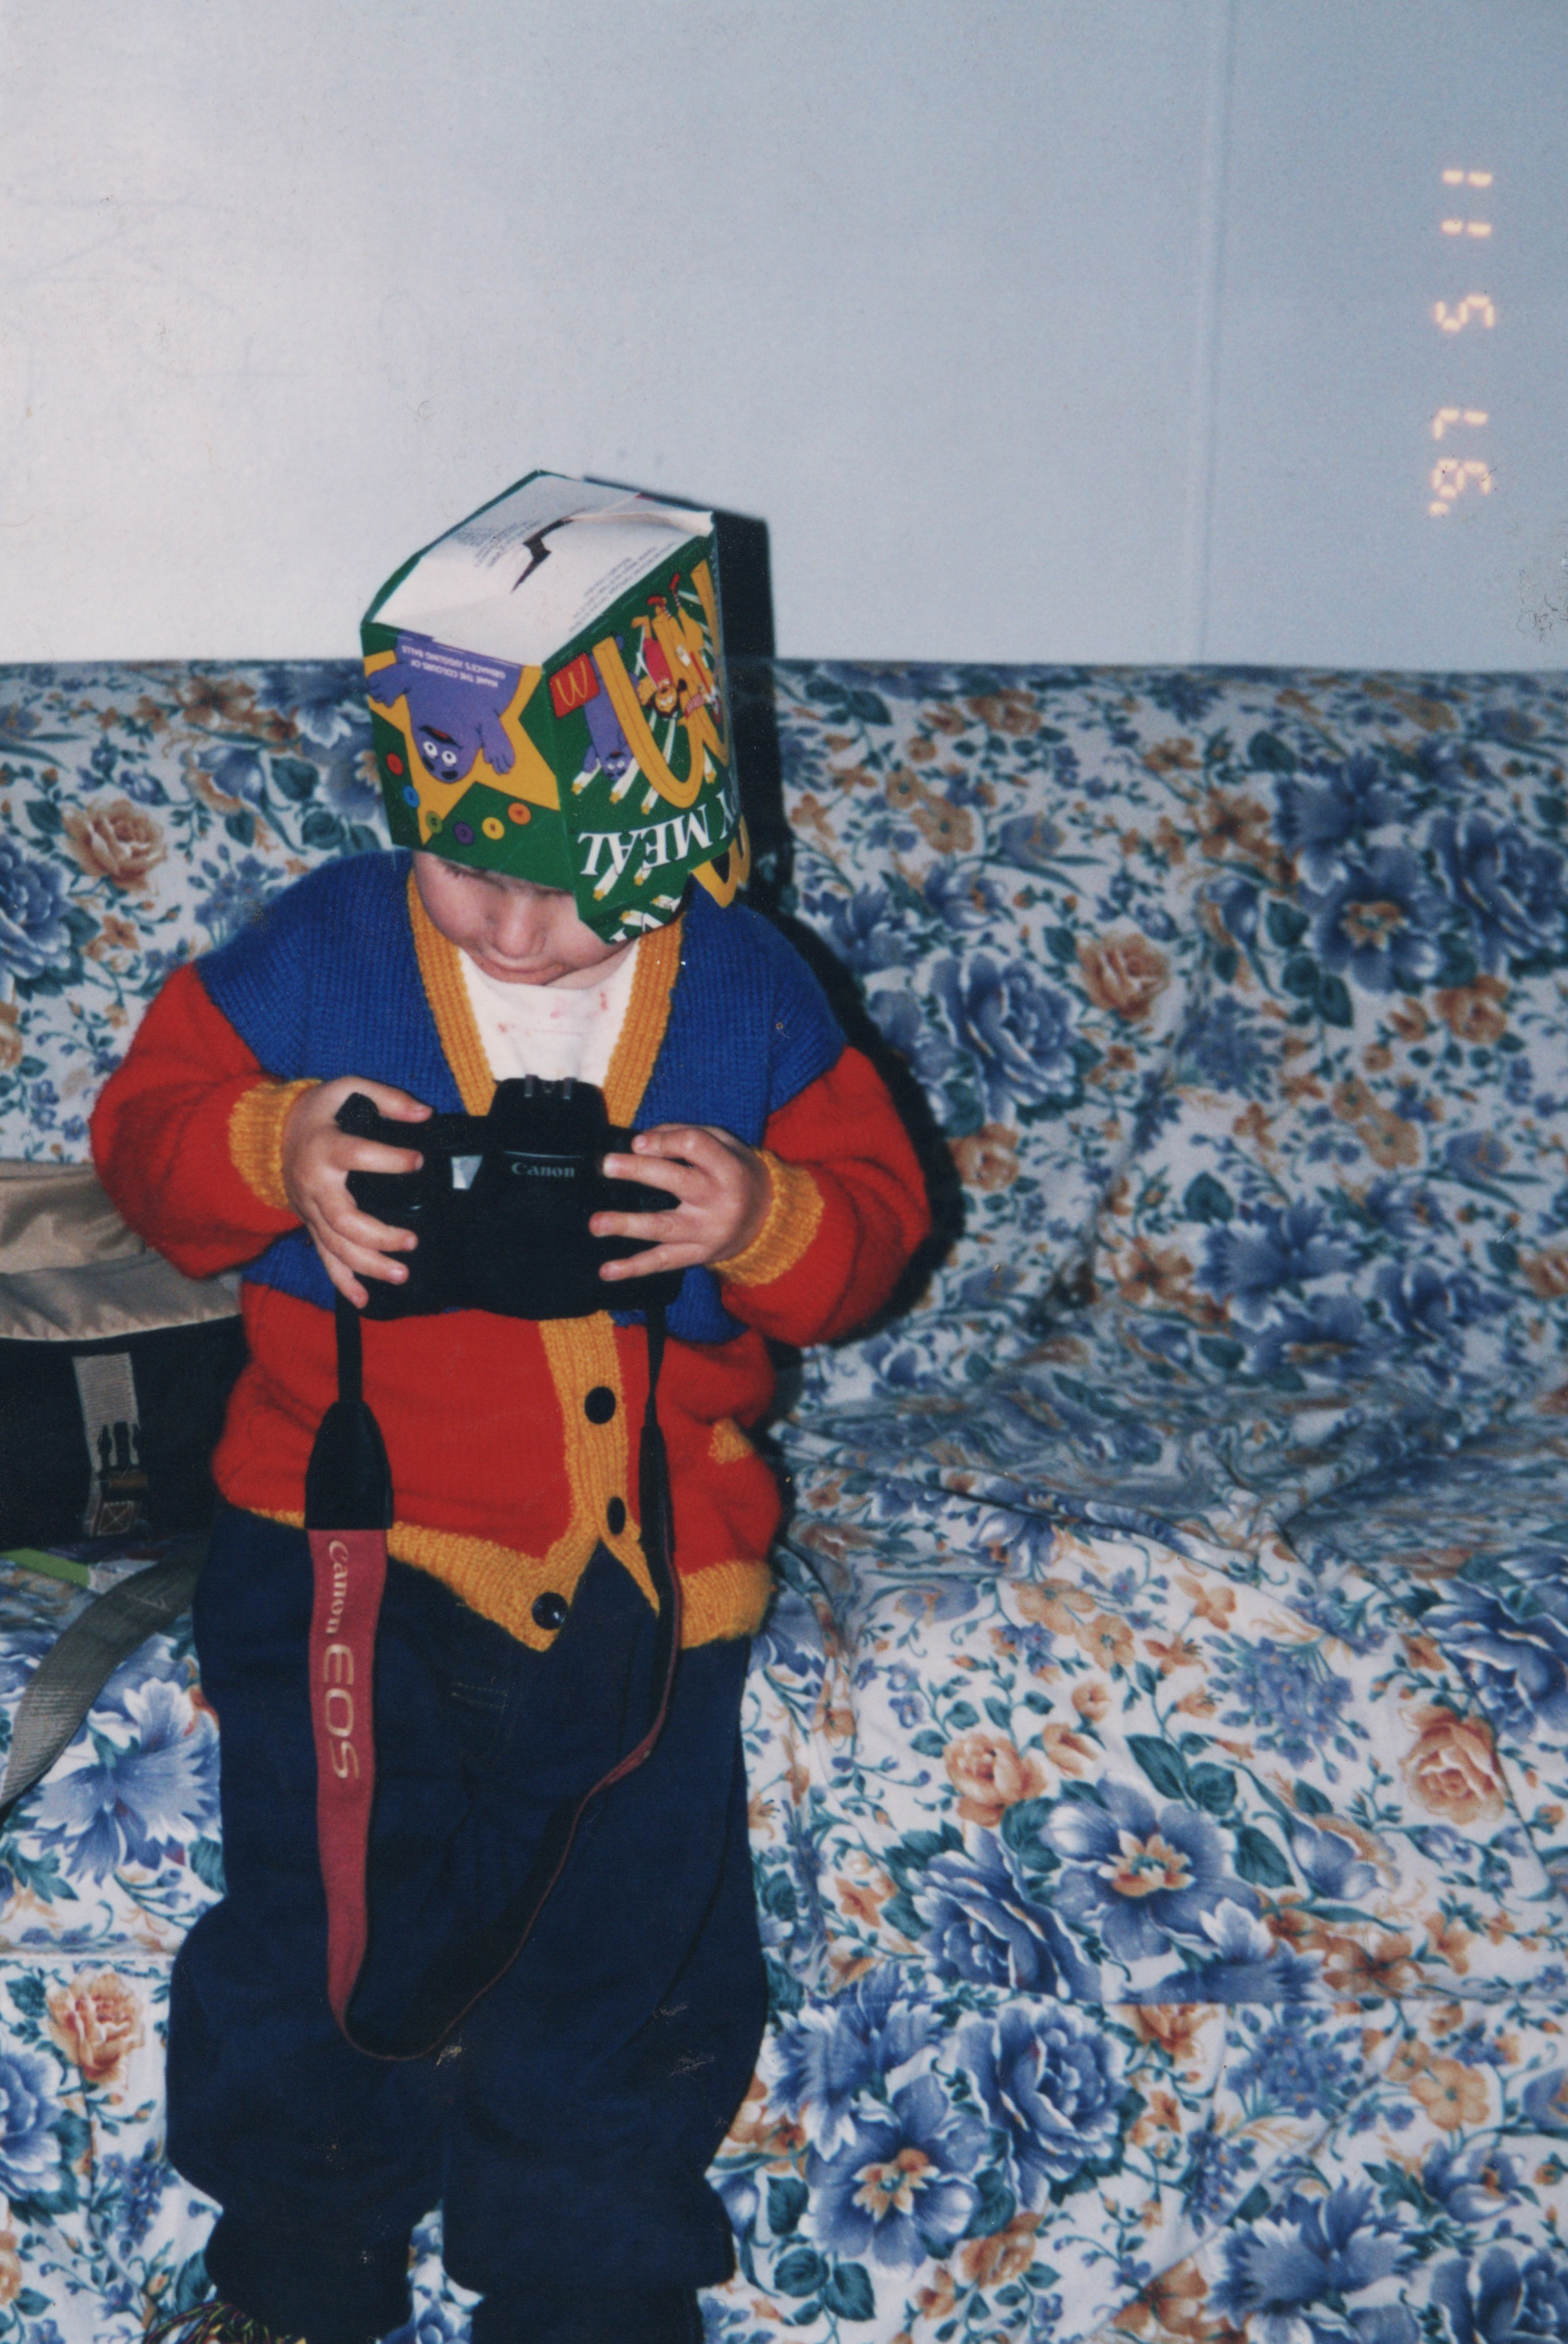 3 Year Old Me, playing with my dads film camera. Adorning a McDonalds Happy Meal Crown 1997